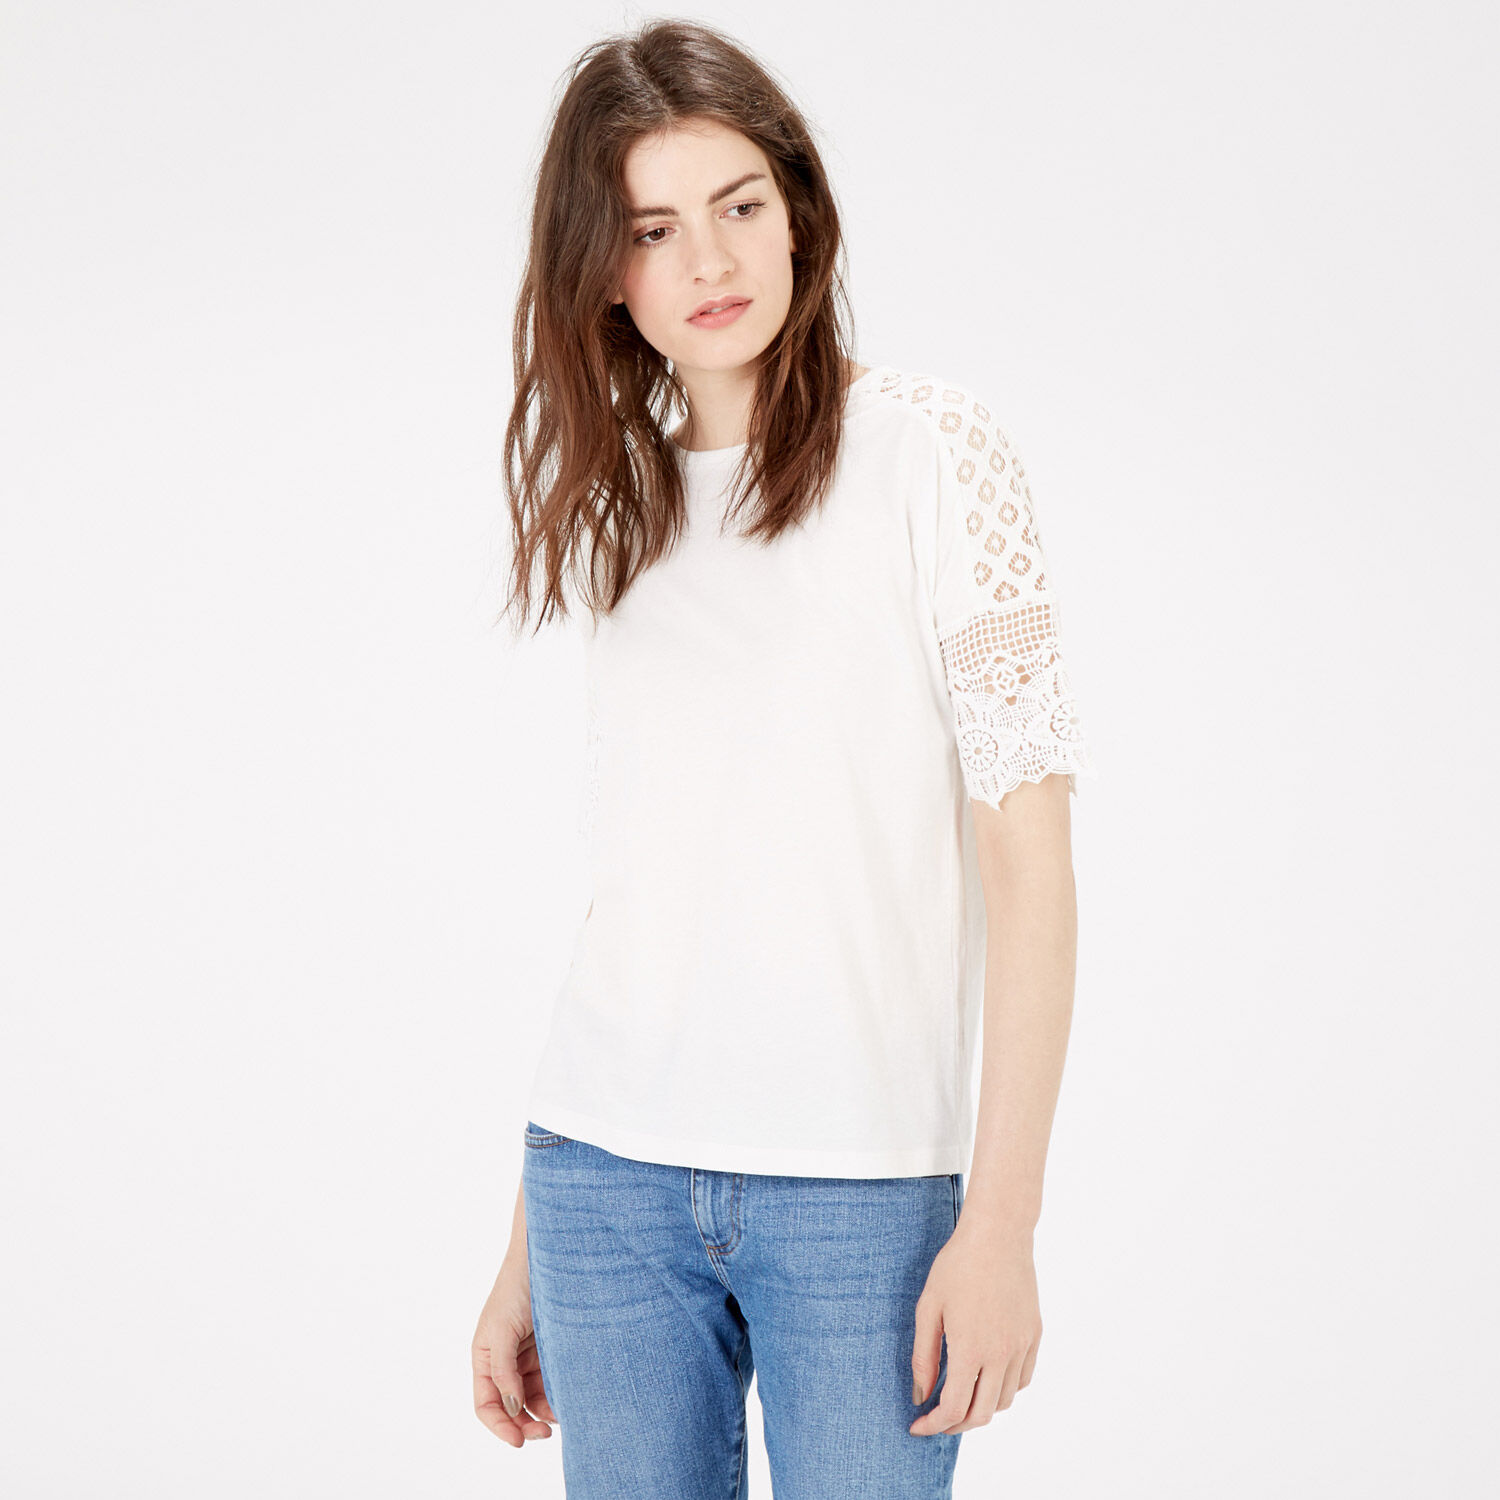 A list of potential substitutes, if you can't get hold of Patons (UK) Cotton Top. Each suggested alternative has detailed advice and warnings about any differences.